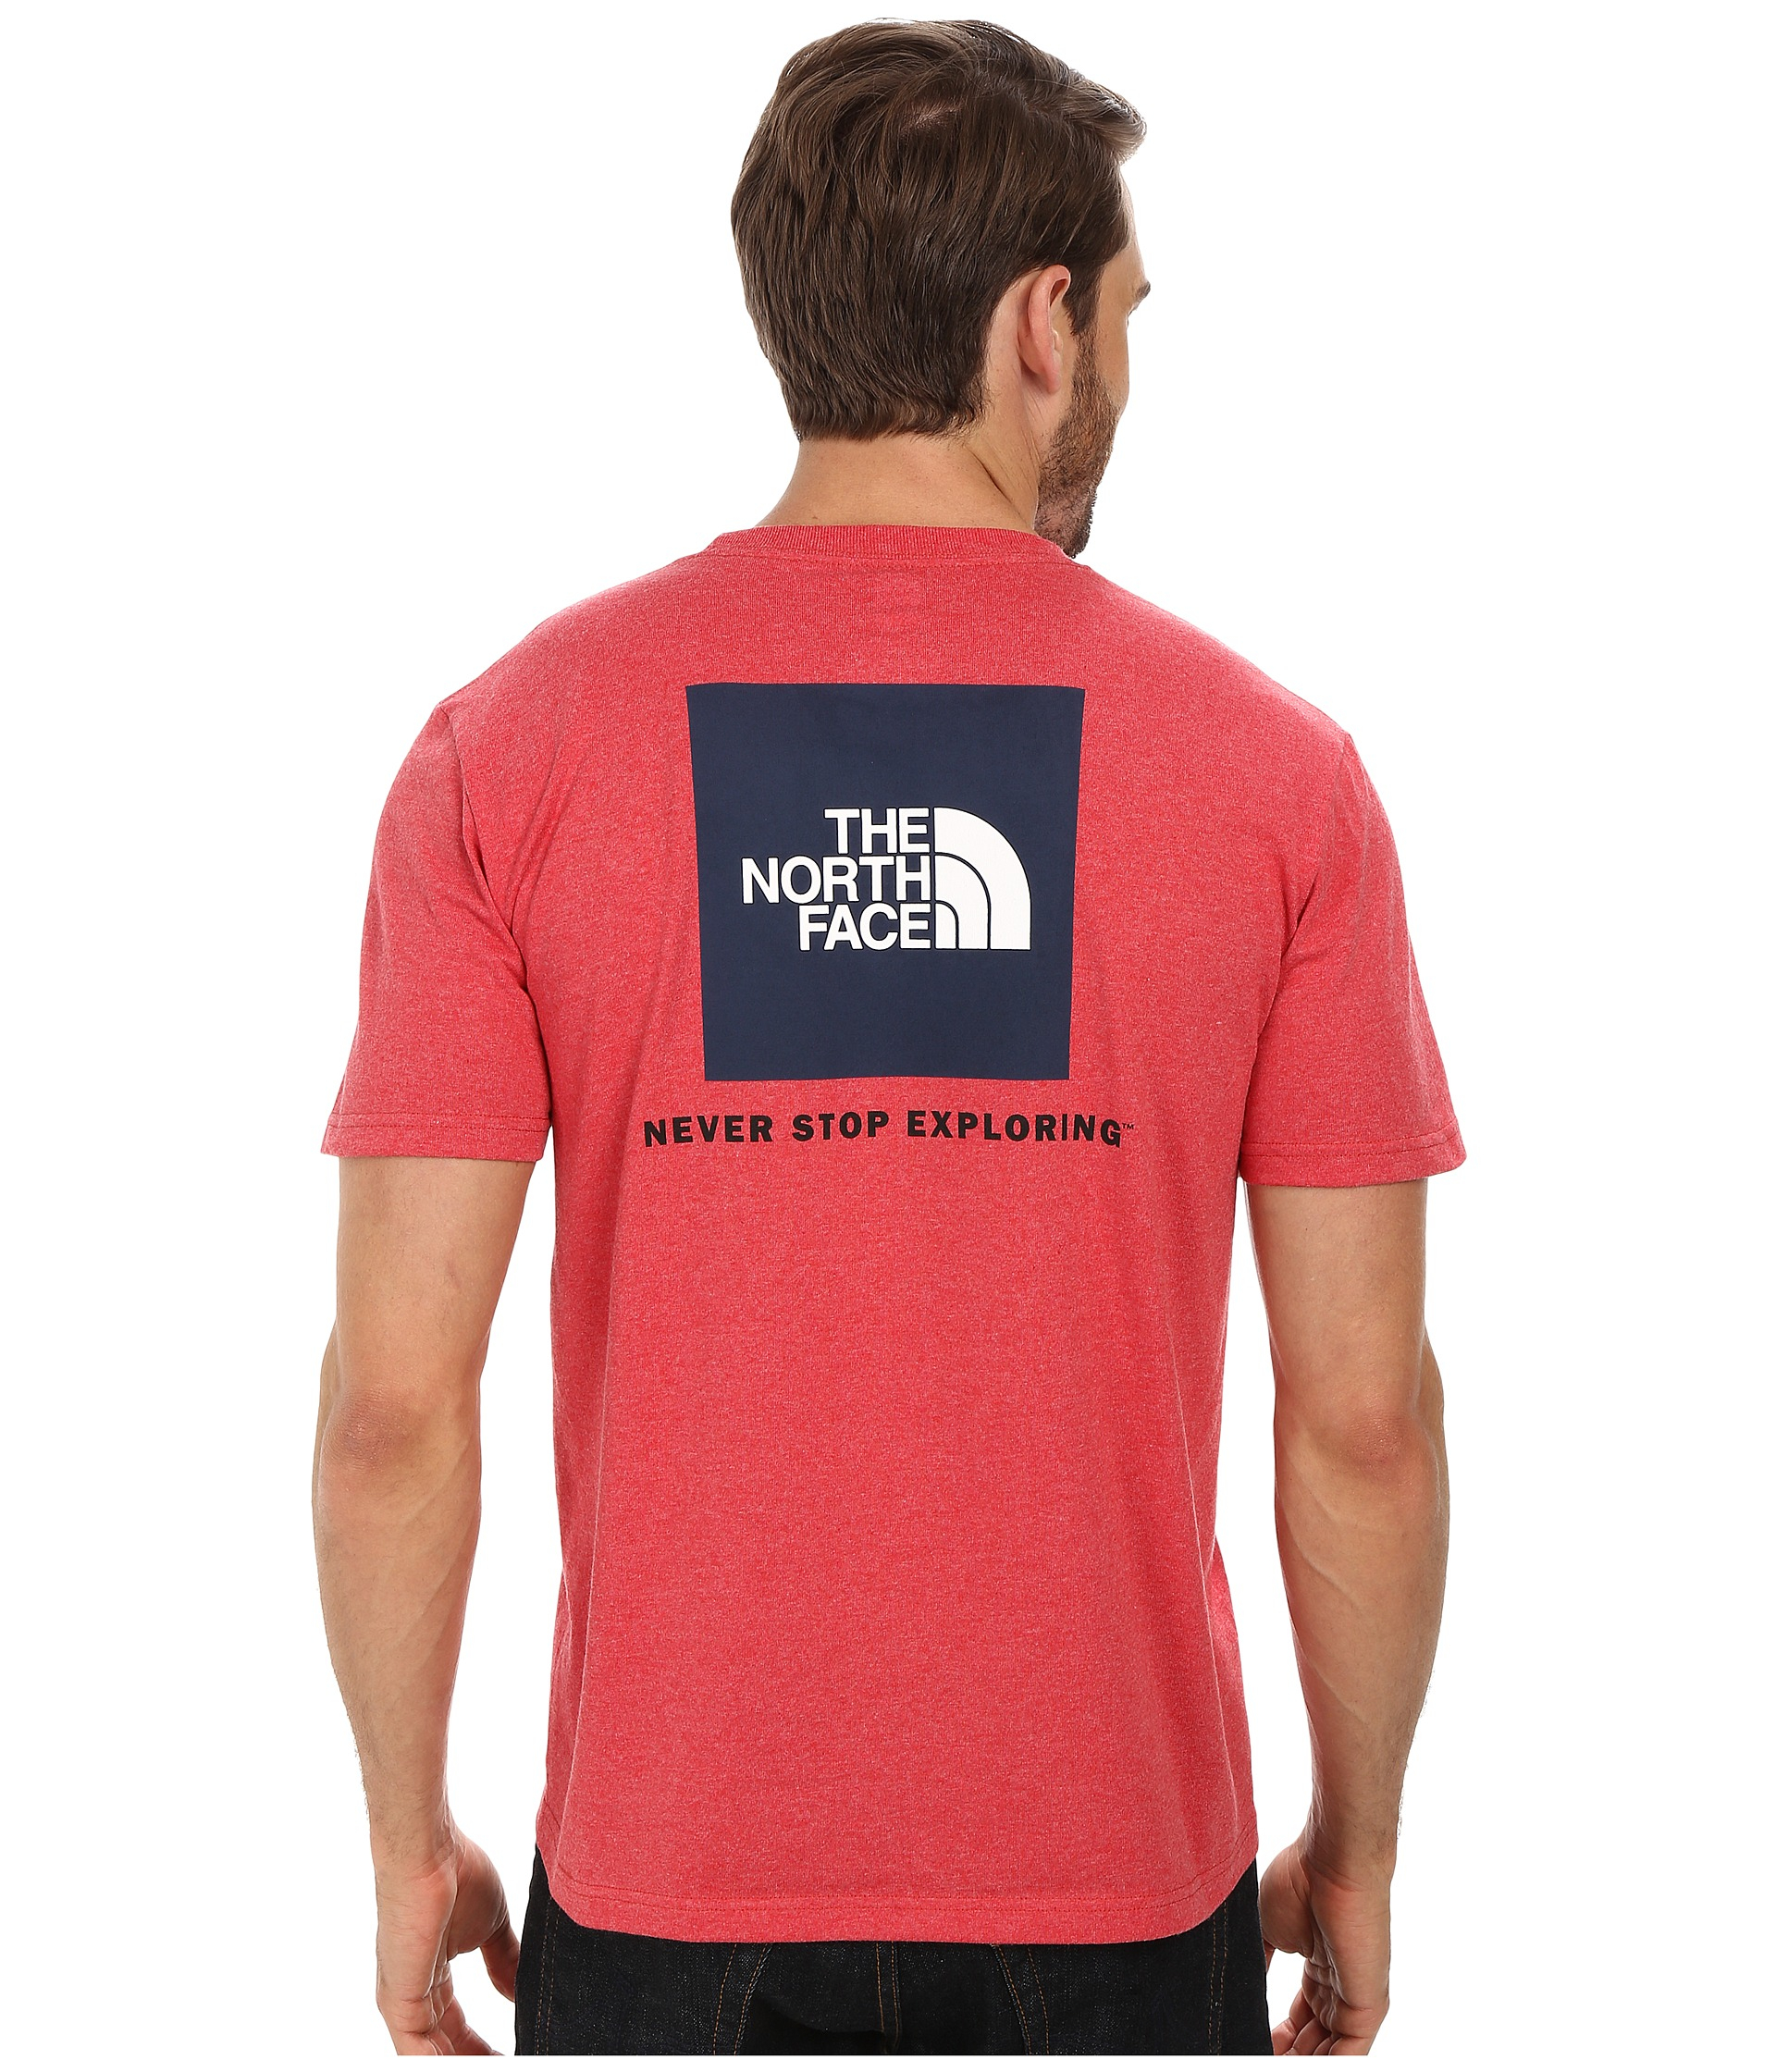 Lyst - The North Face S S Red Box Tee in Red 7ed20145dd03